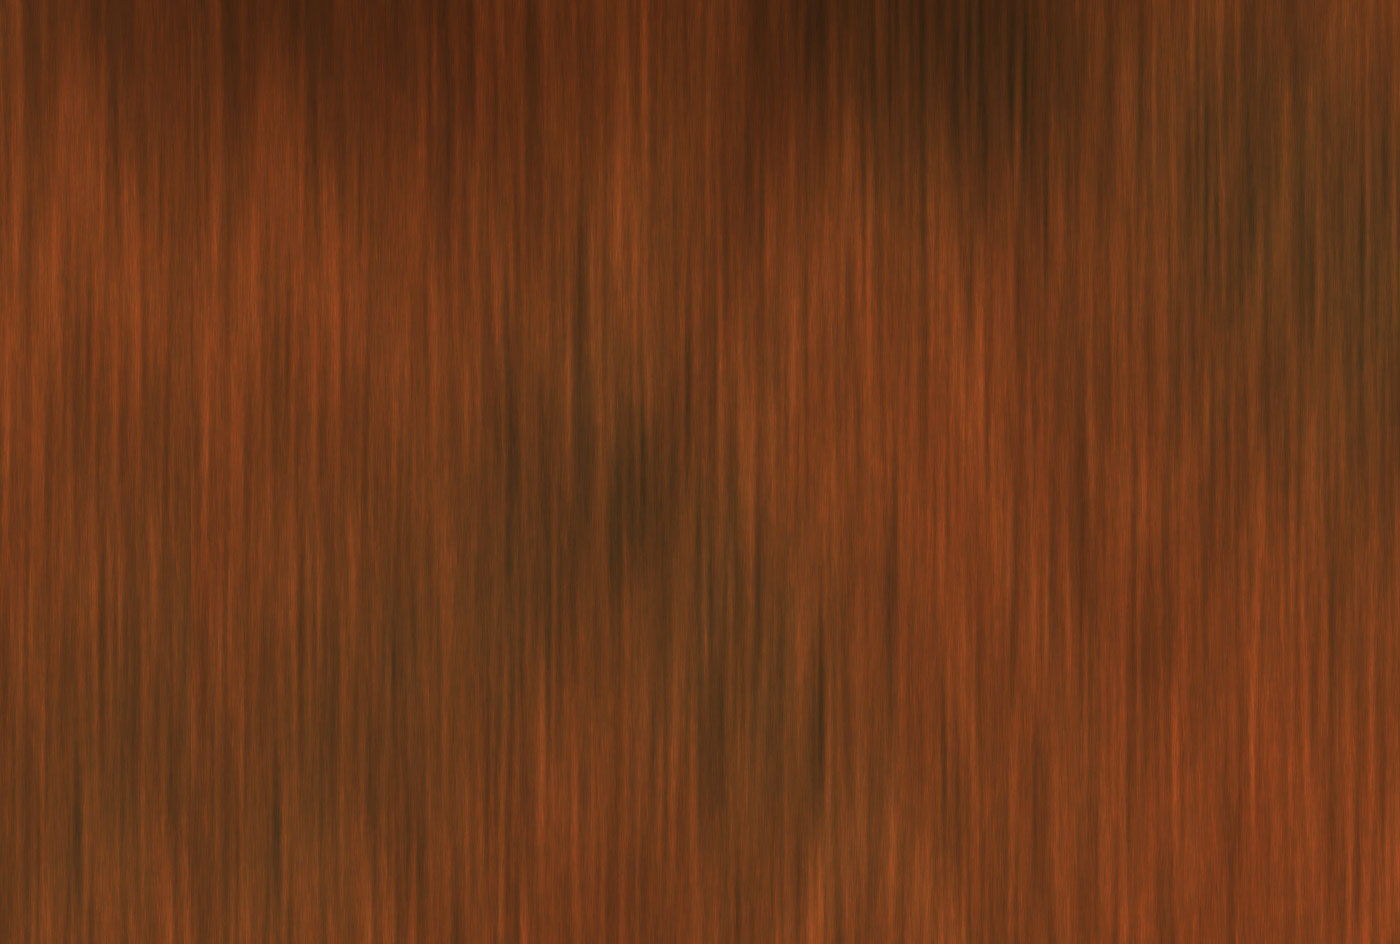 stained wood texture effect